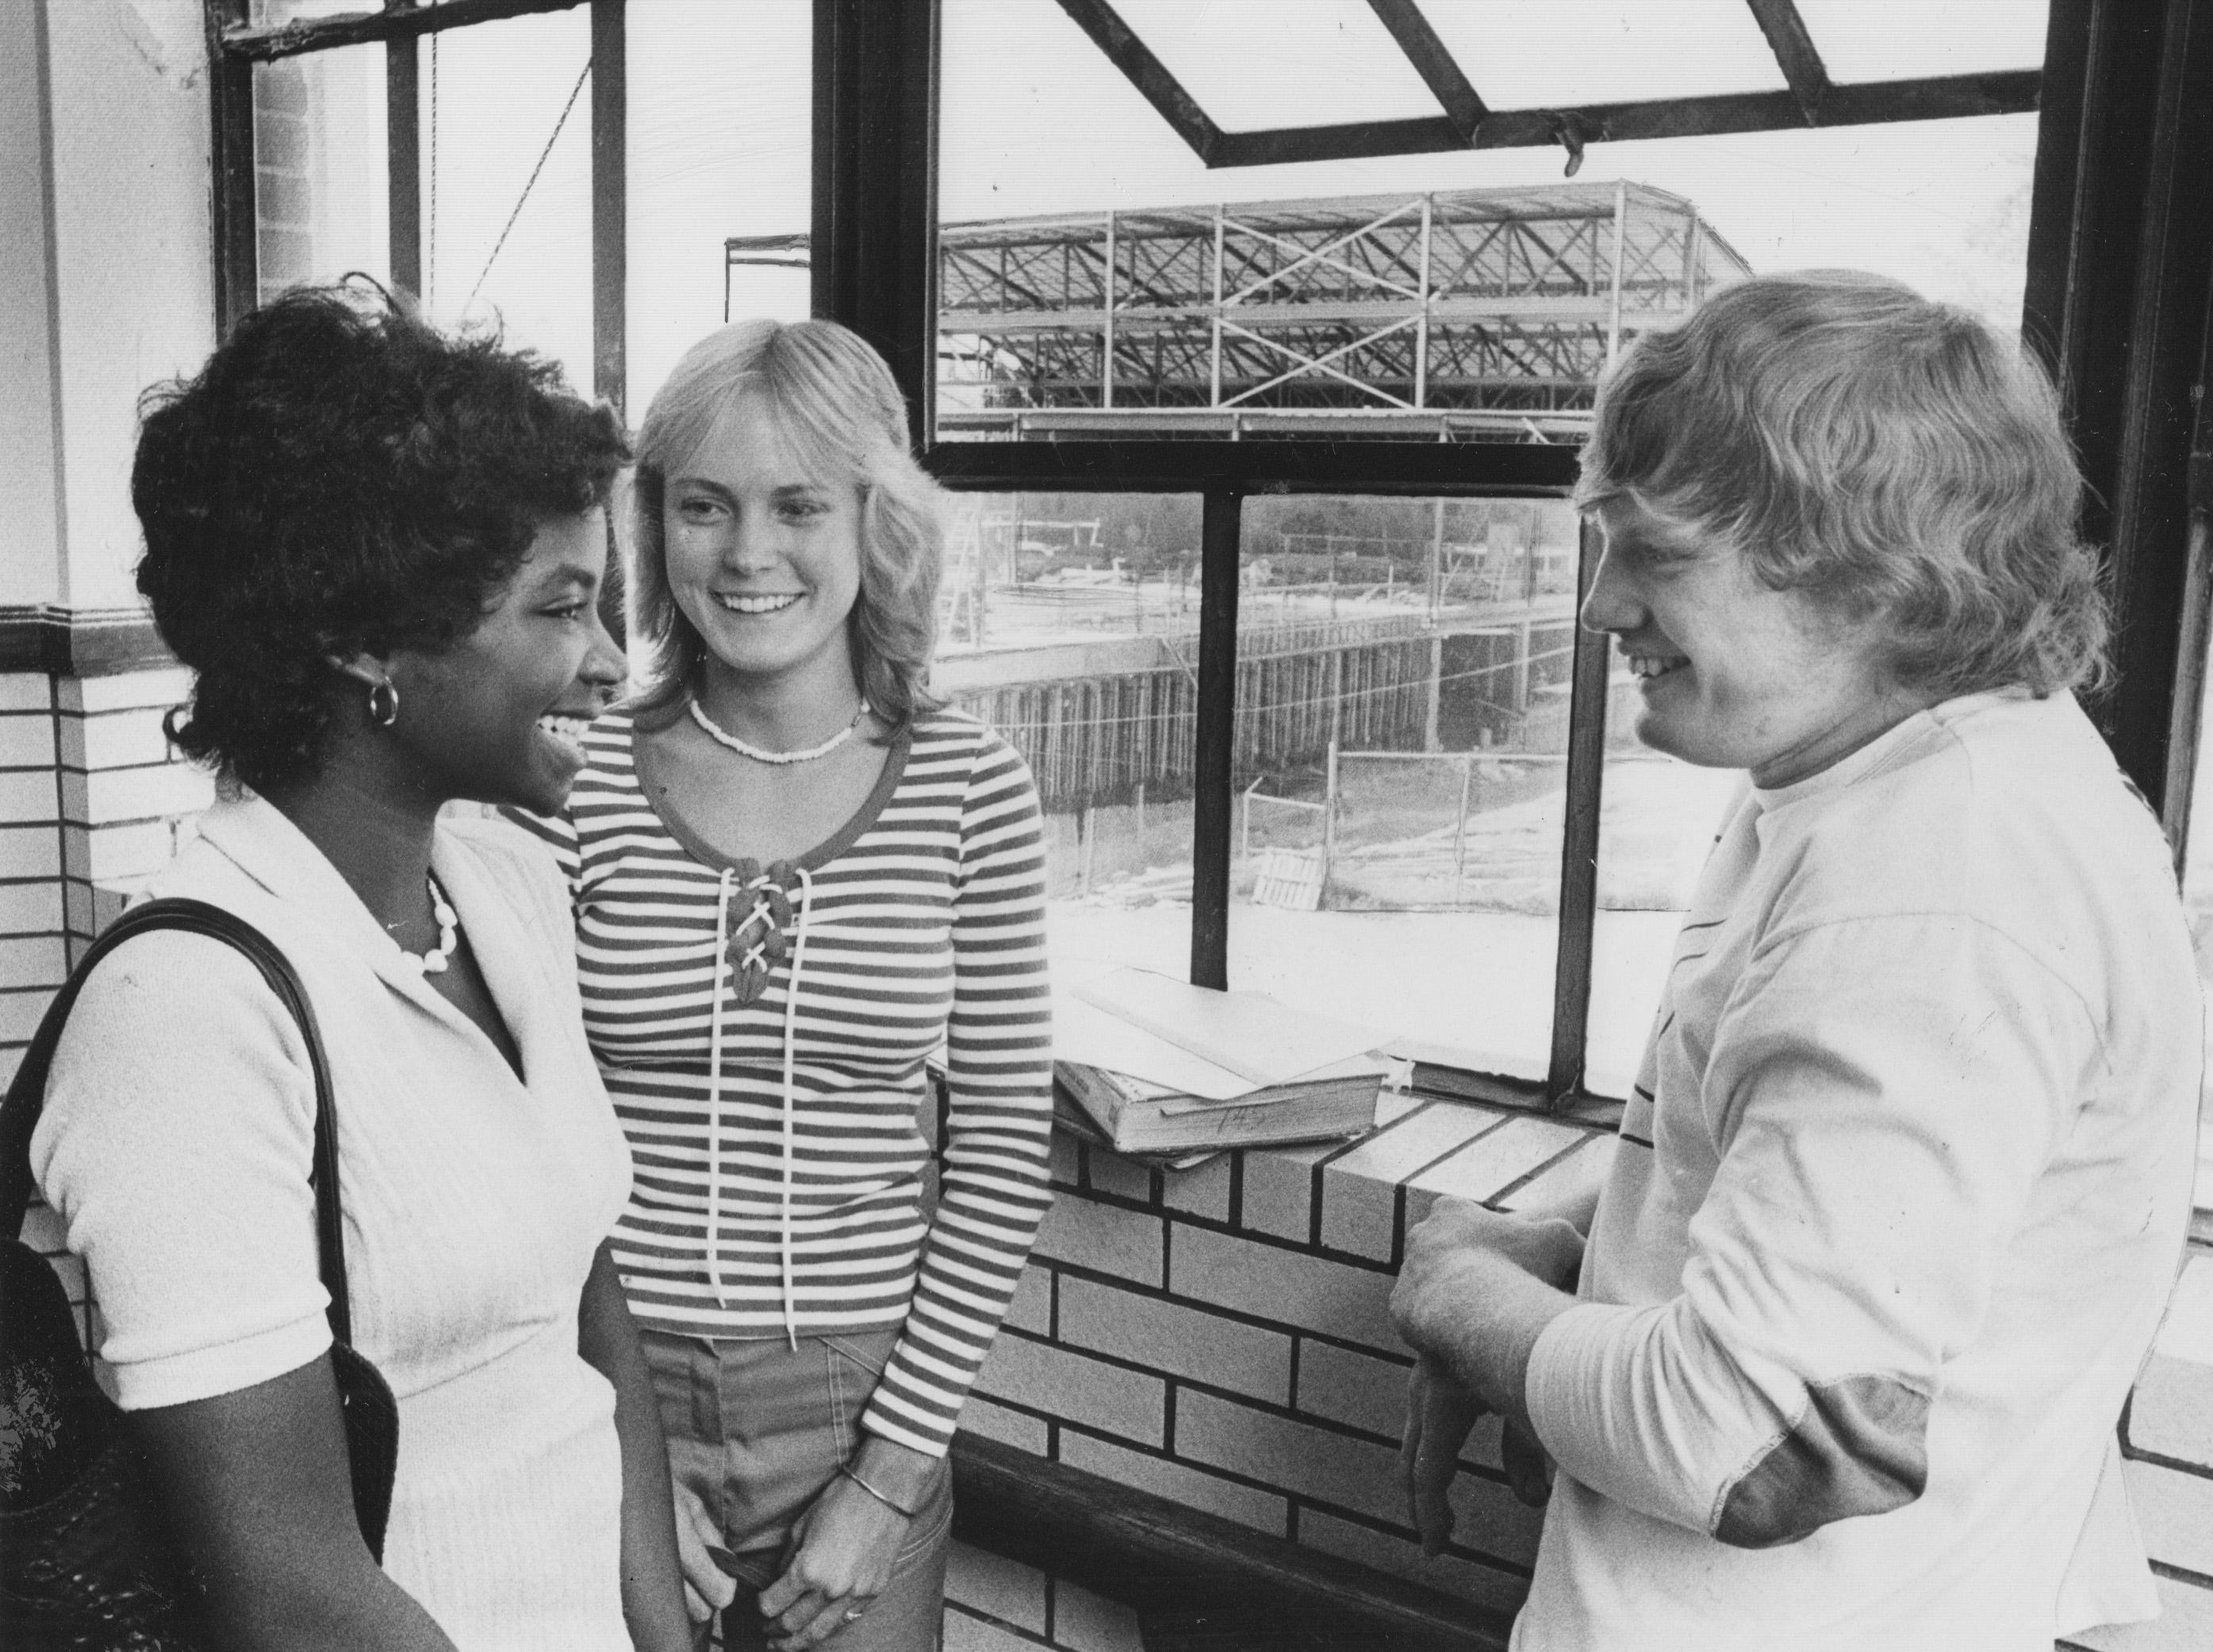 Washington High School students Rhonda Quarles (left) chats with Amy Black and her brother Jeff as construction of a new gymnasium goes on in the back fround in 1975.